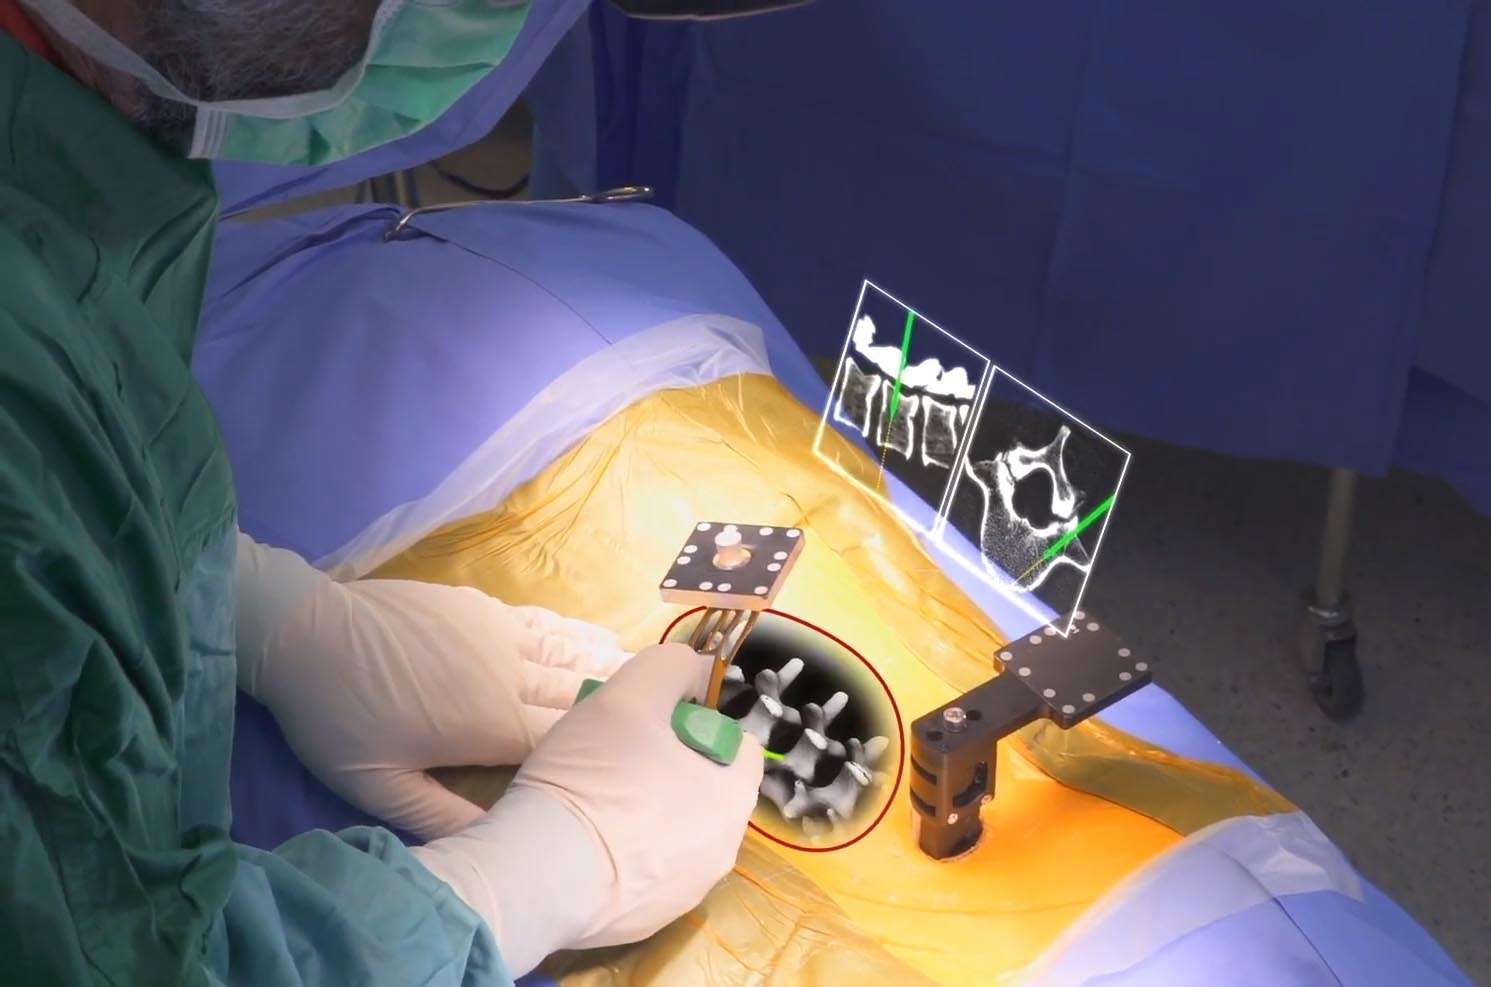 Today, 3 startups using Augmented Reality in surgery